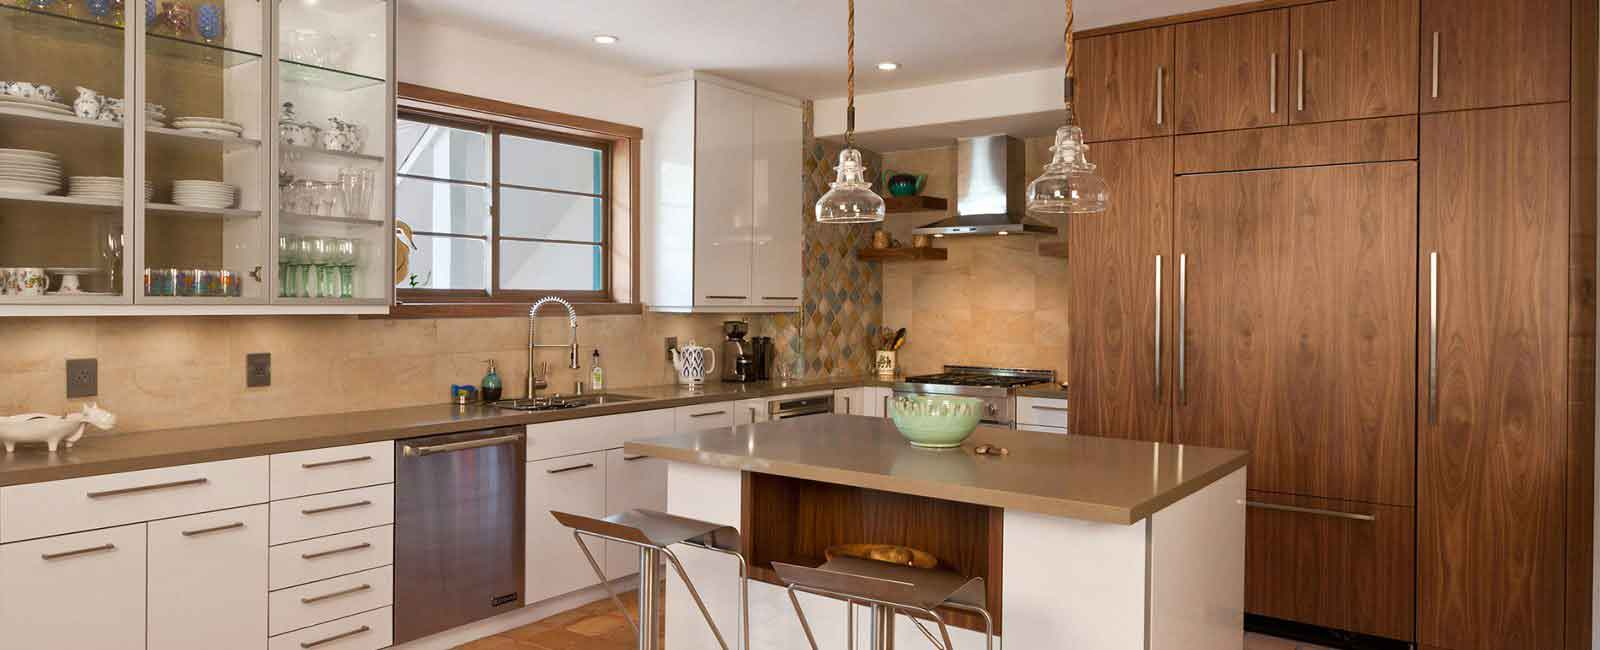 Kitchen Cabinet Refacing In Santa Monica CA